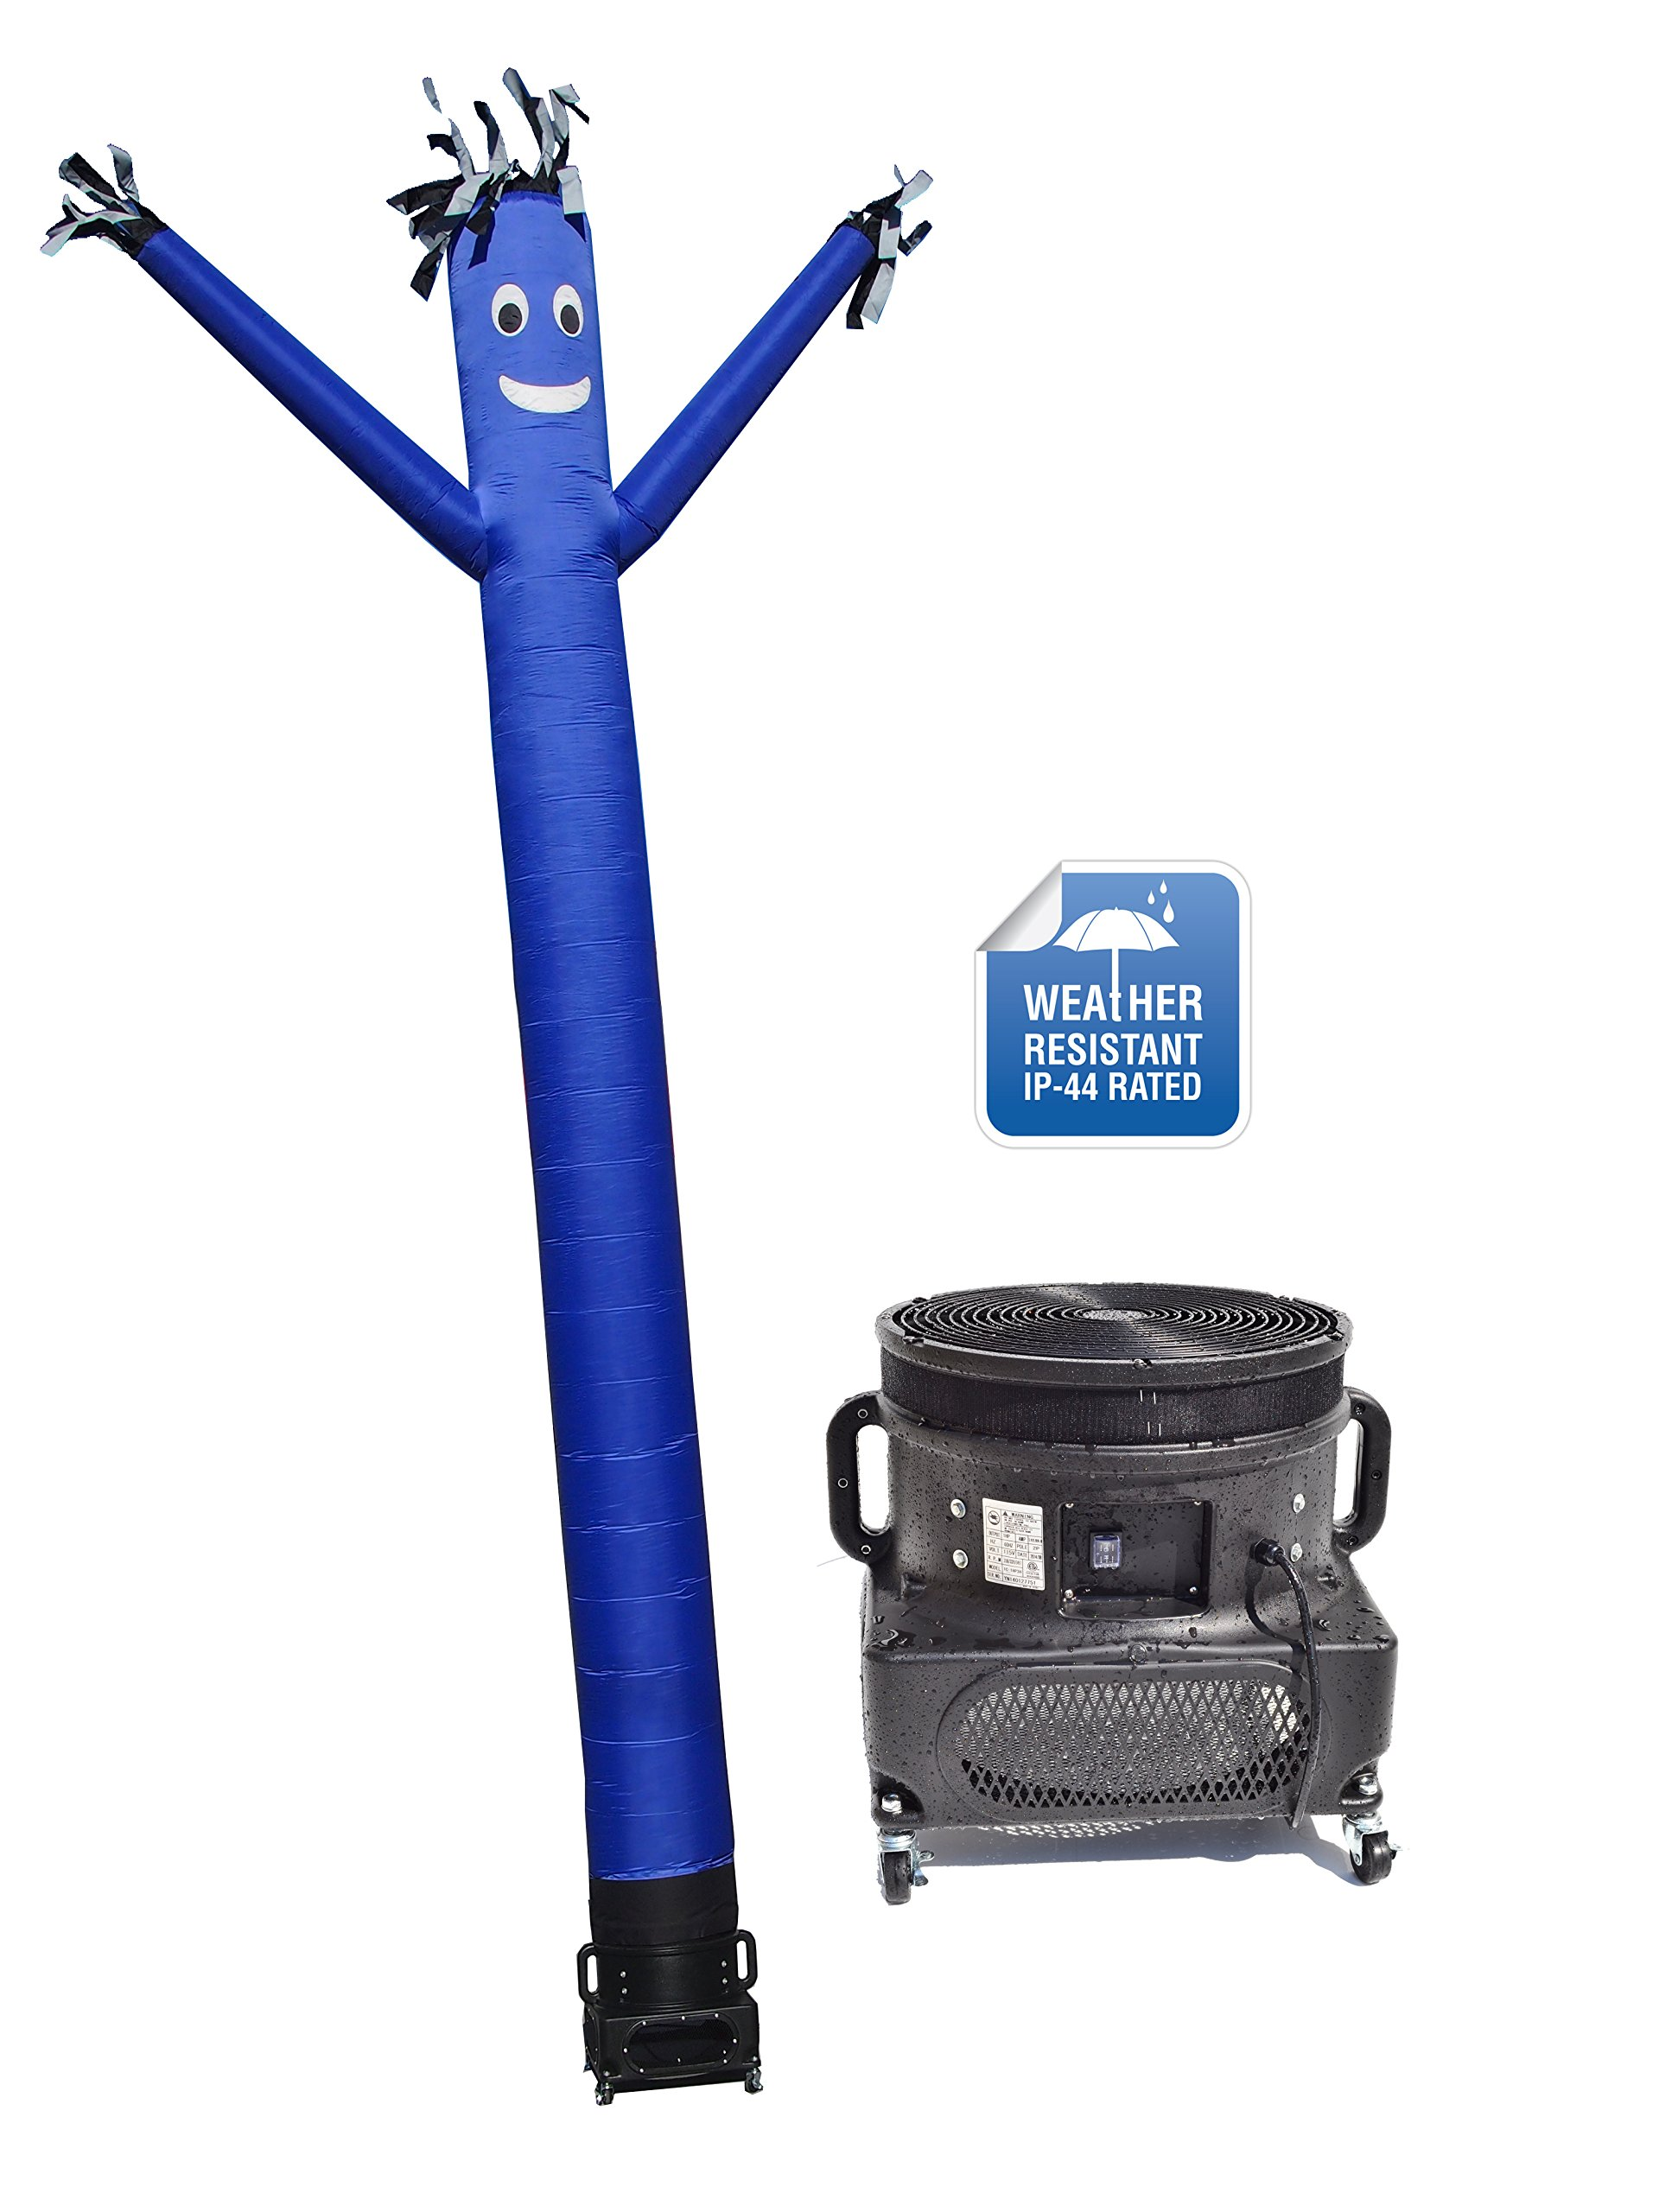 LookOurWay Air Dancers Inflatable Tube Man Complete Set with 1 HP Weather-Resistant Sky Dancer Blower, 20-Feet, Blue